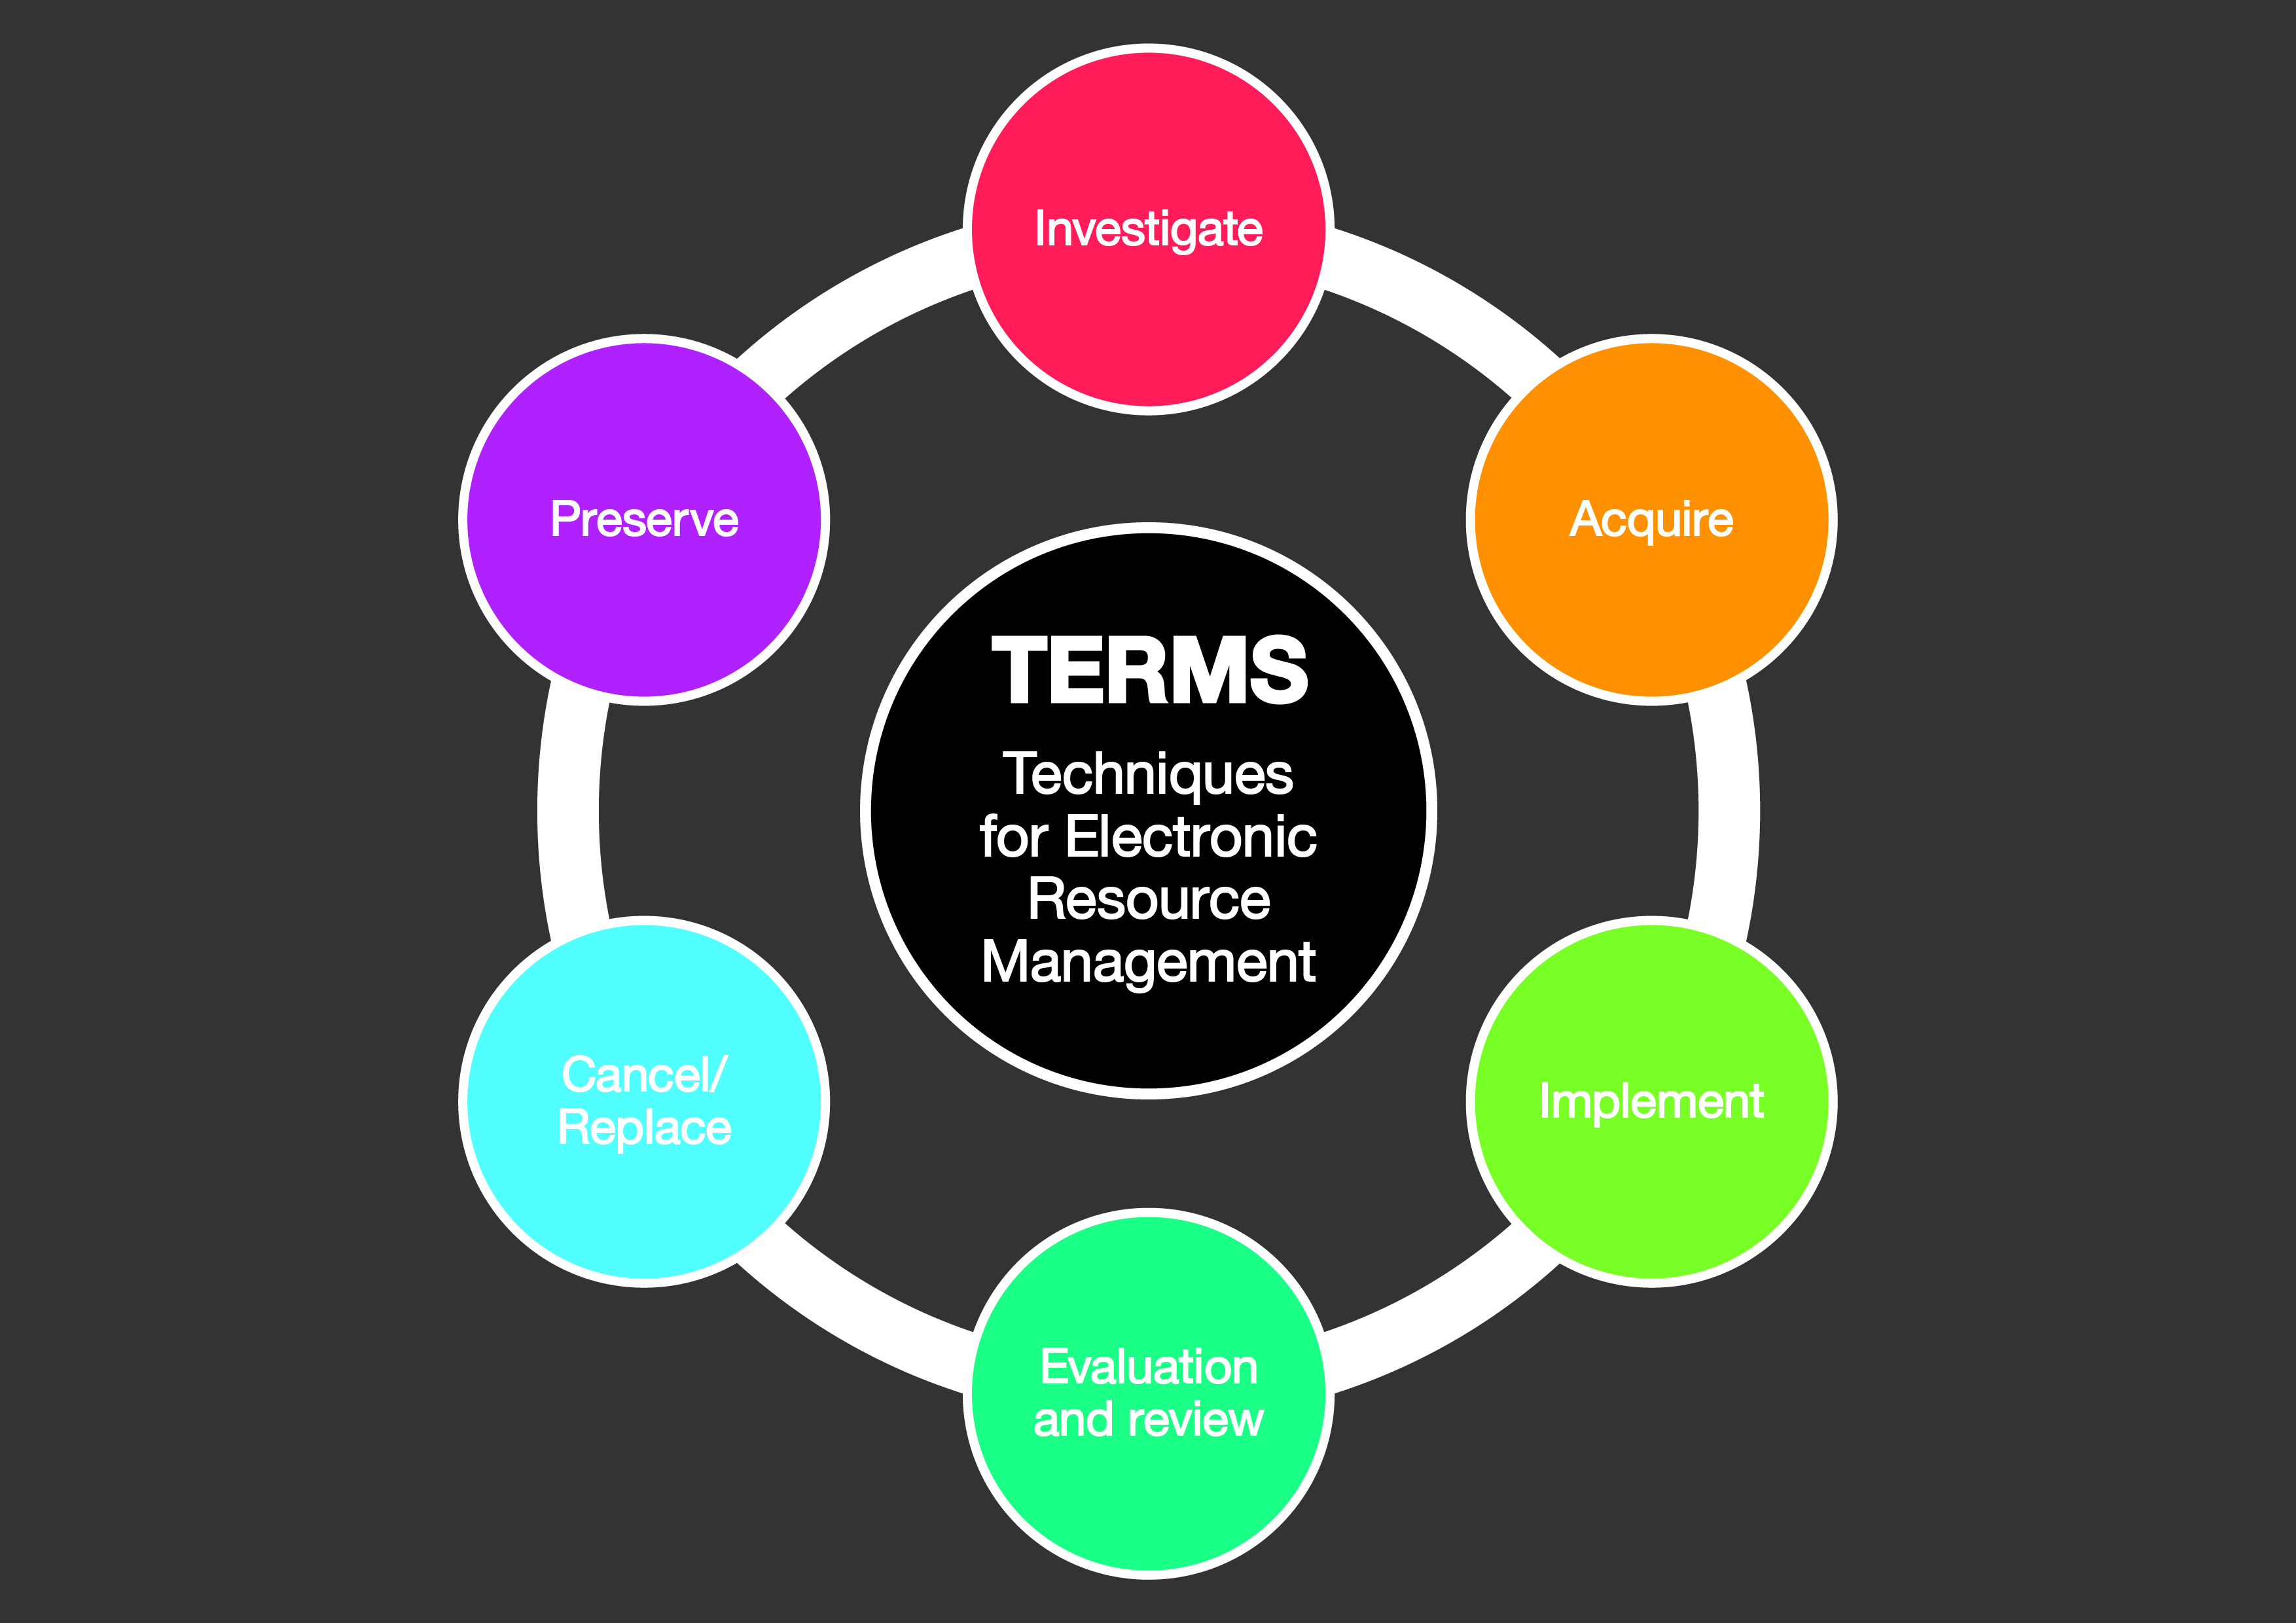 terms techniques for electronic resource management